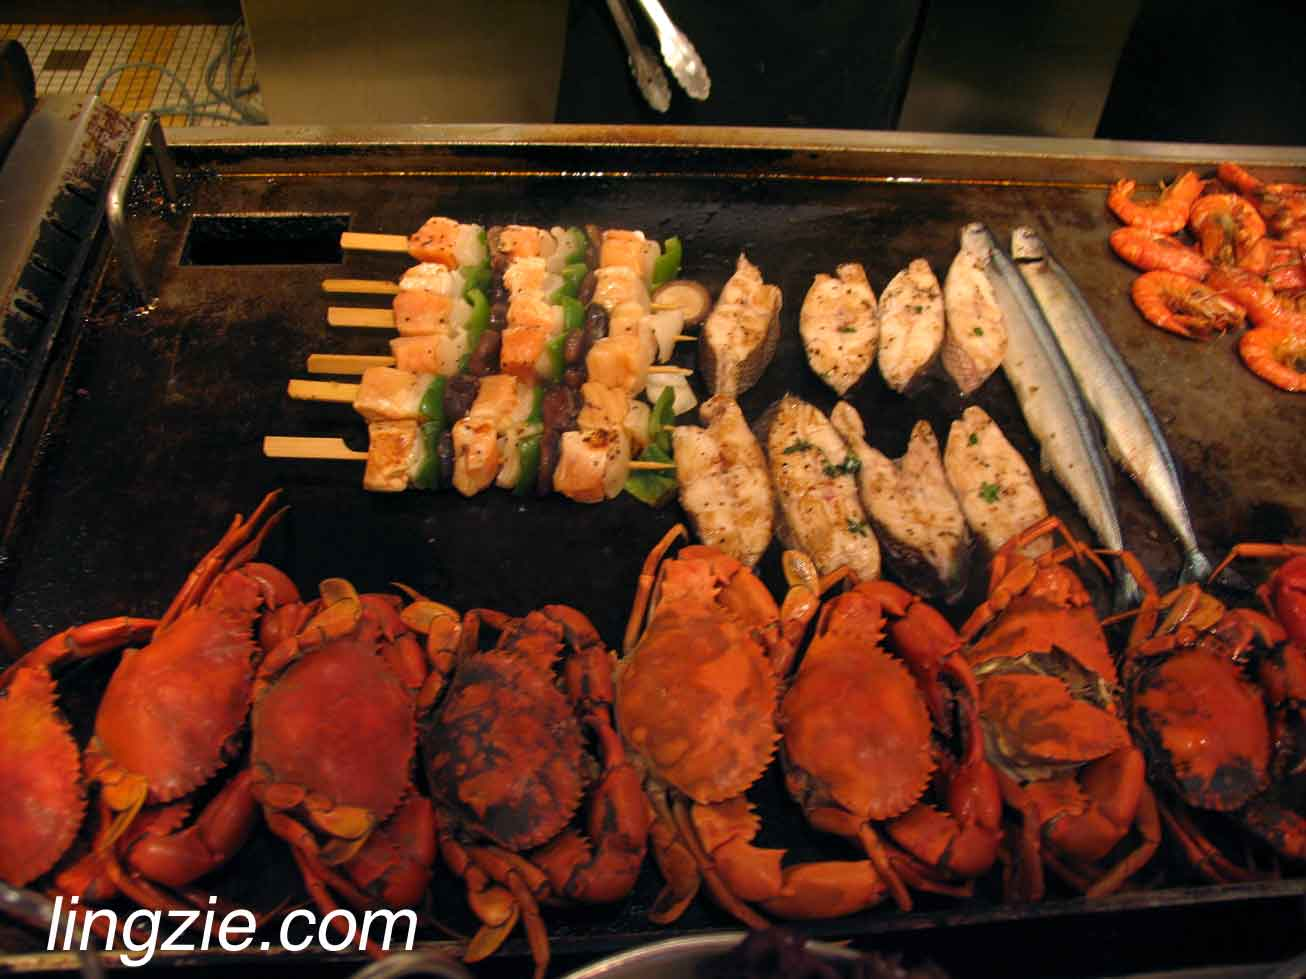 Seafood skewers, crabs and more!